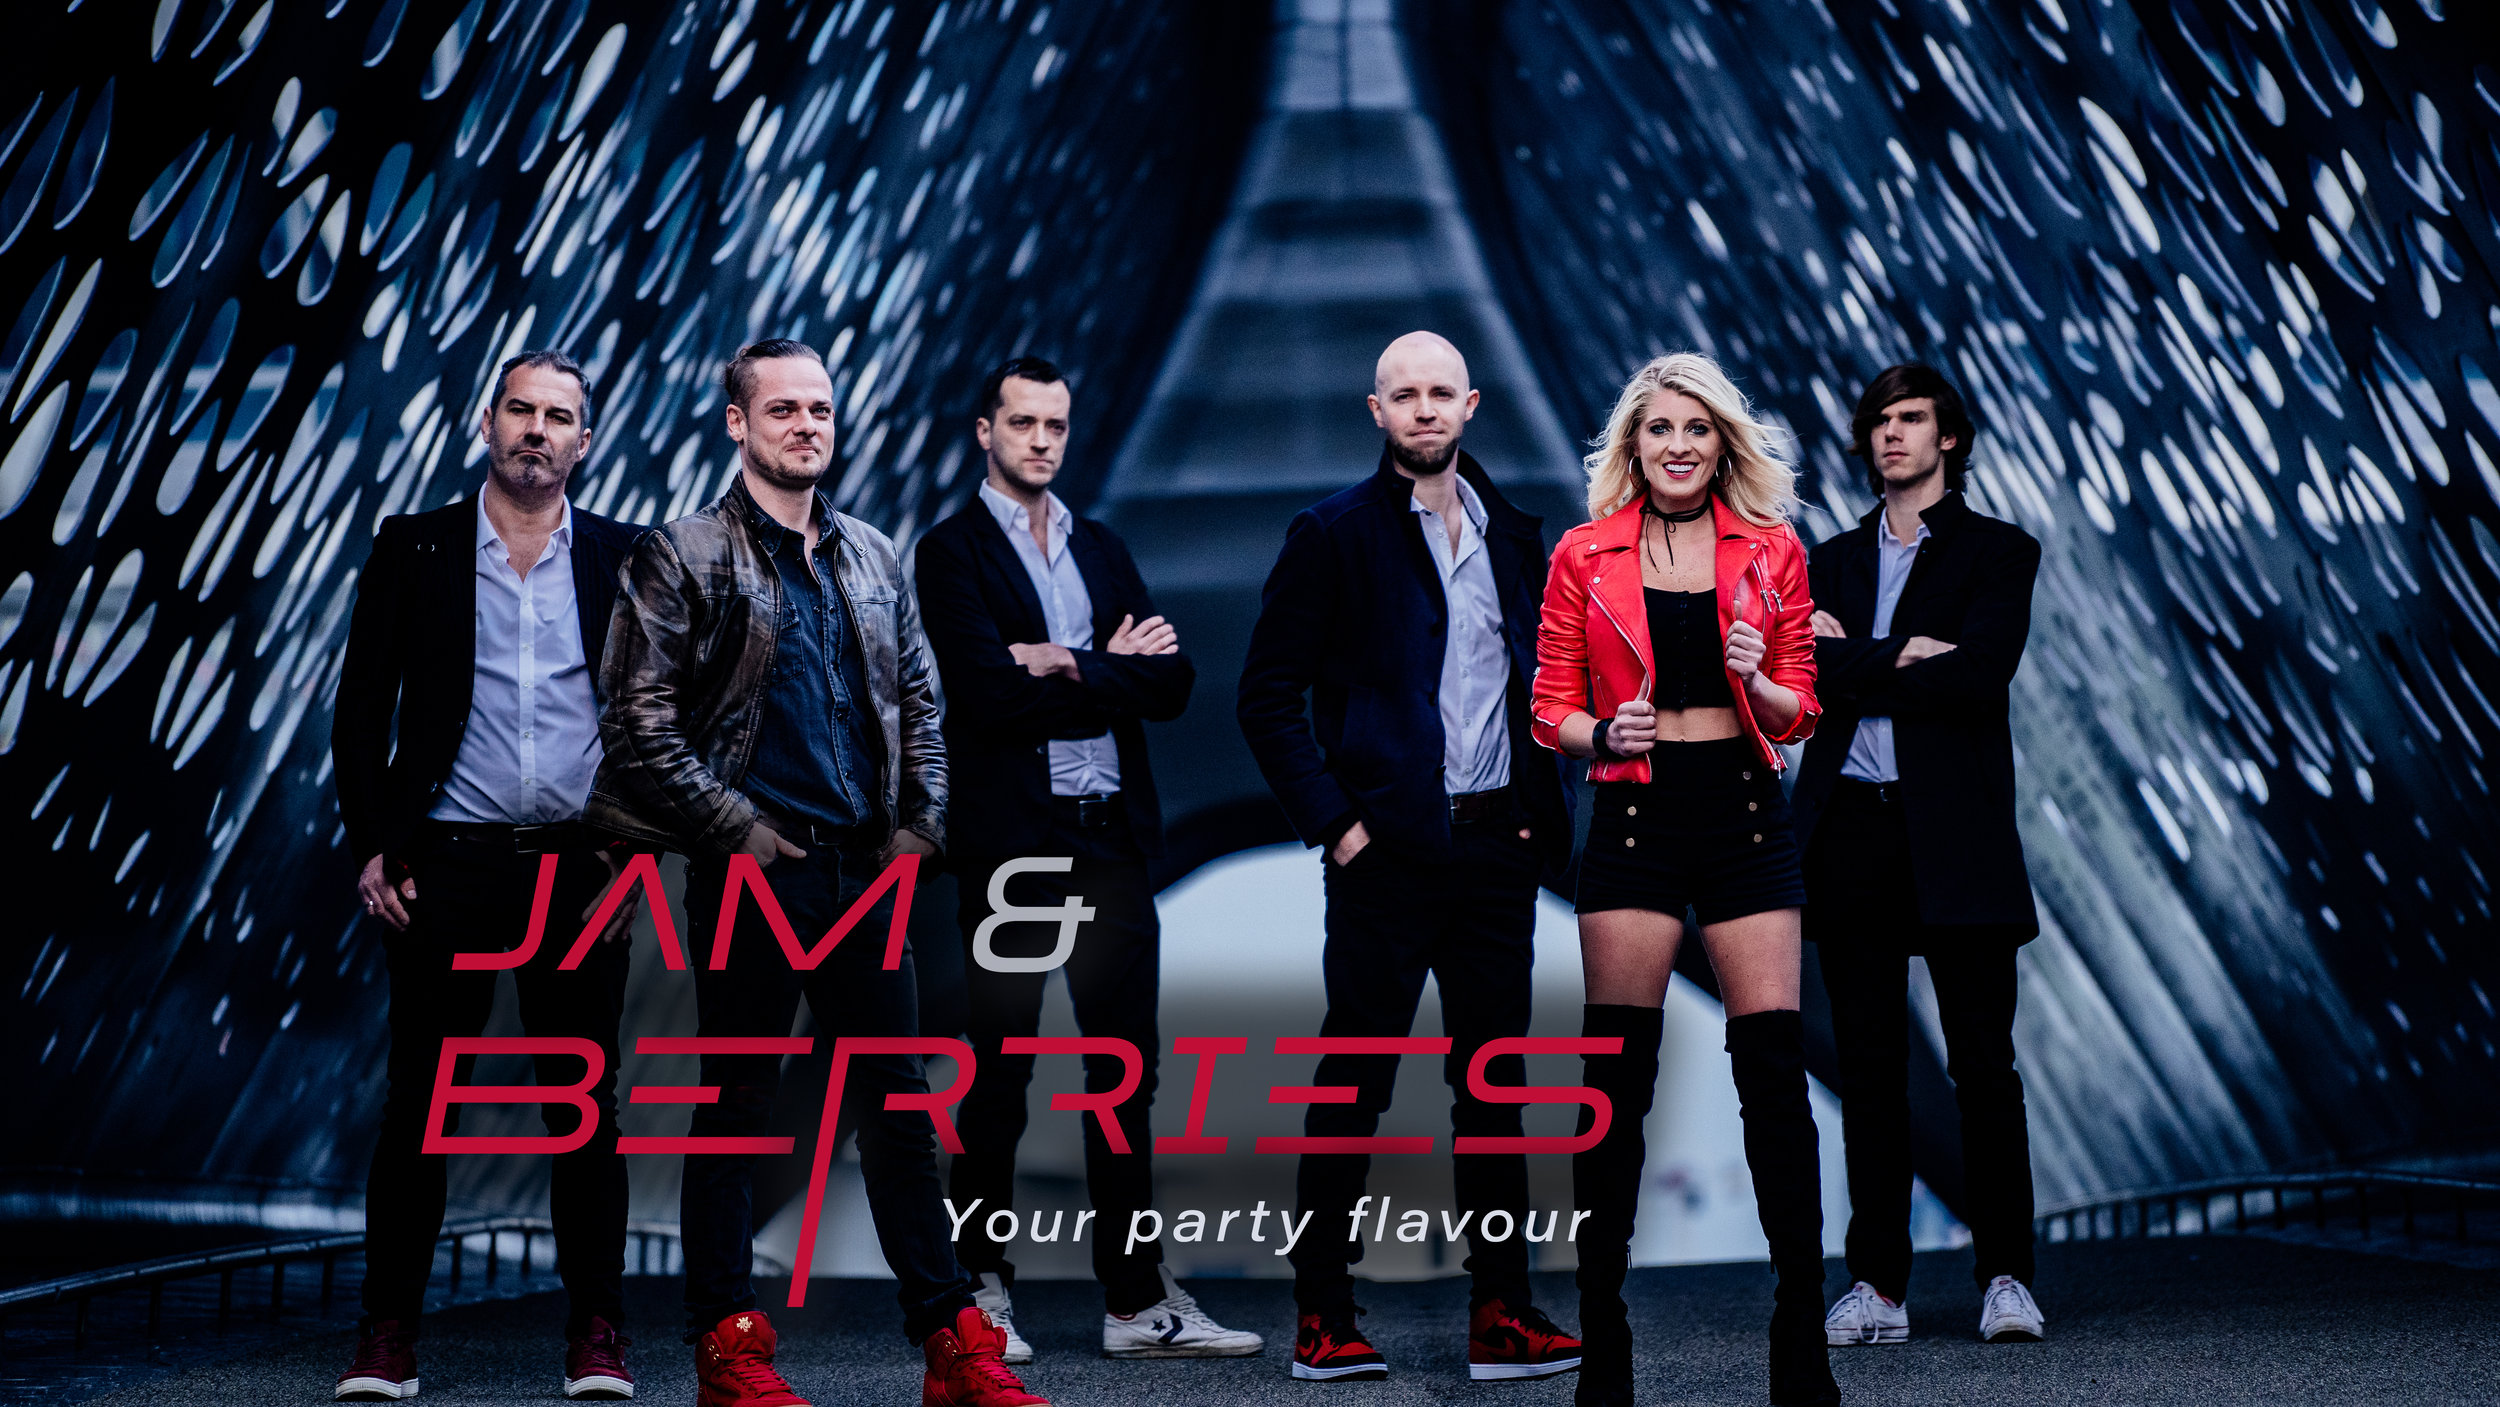 Jam & Berries coverband